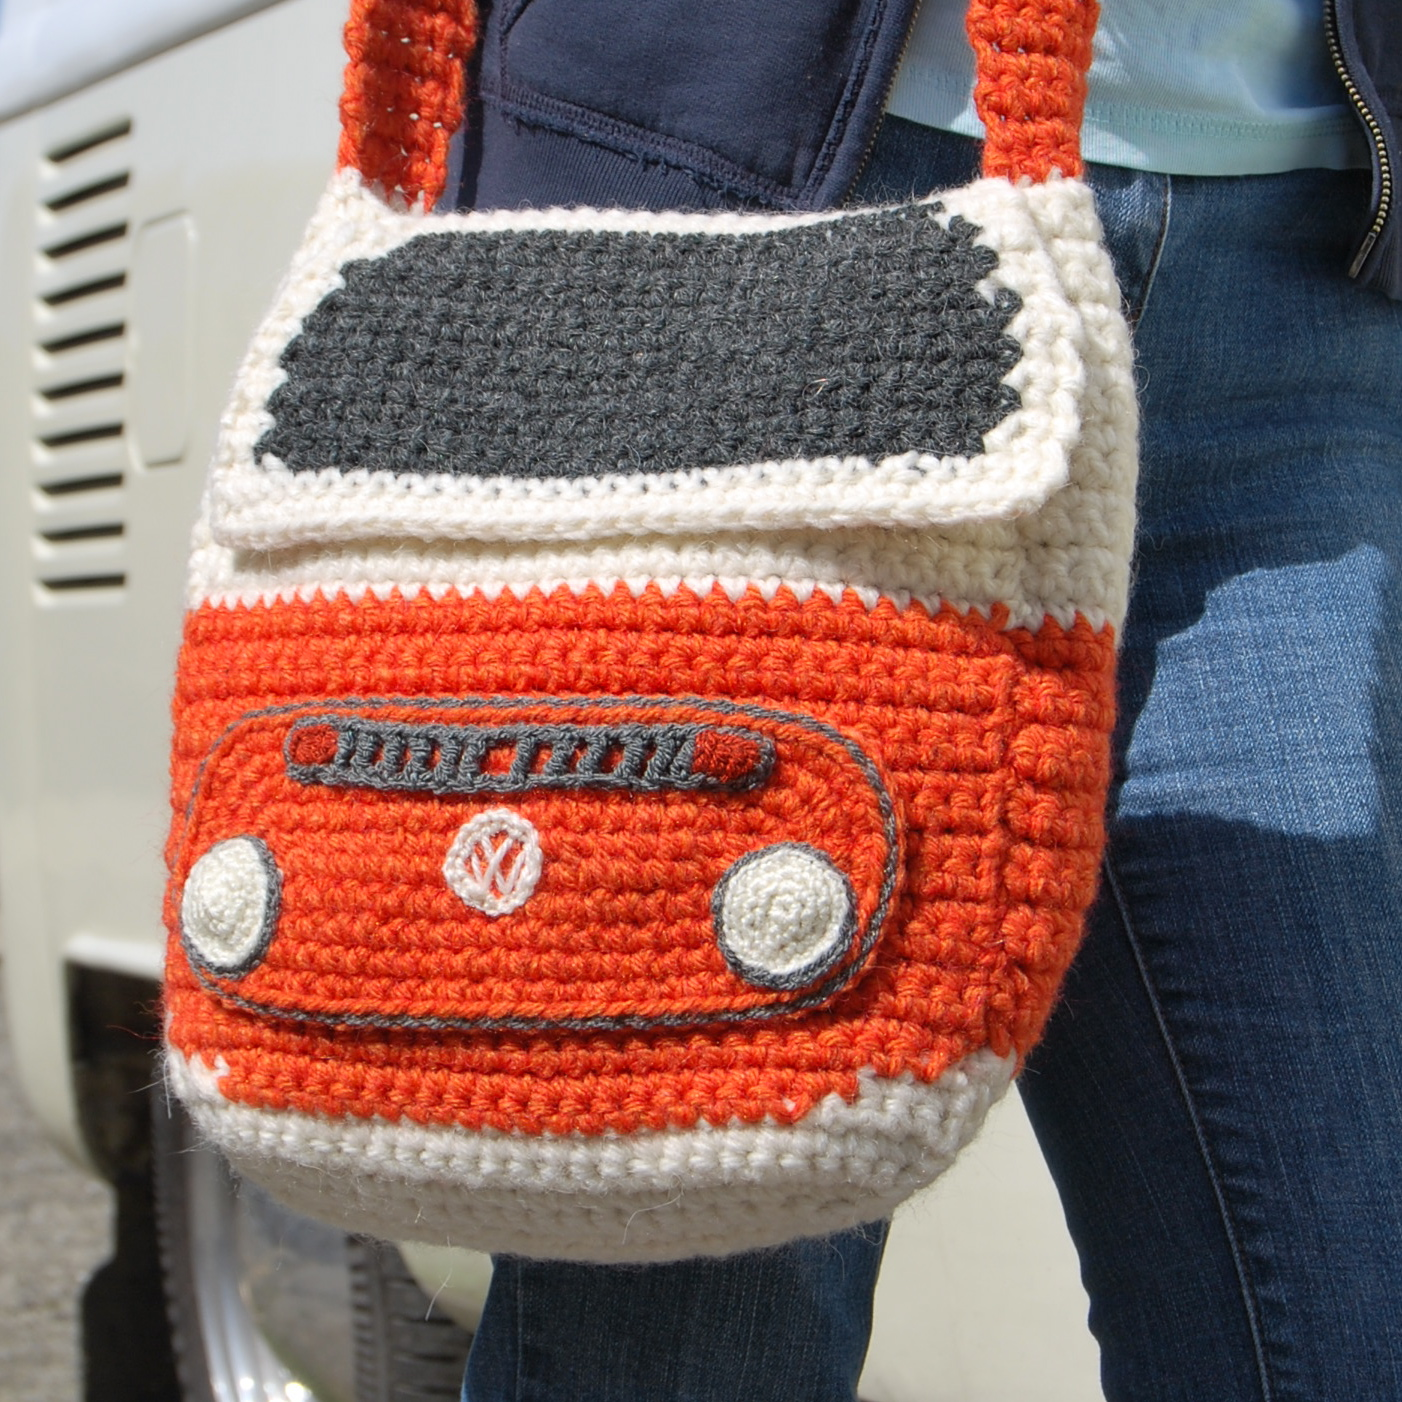 Crochet Pattern For Shoulder Bag 25